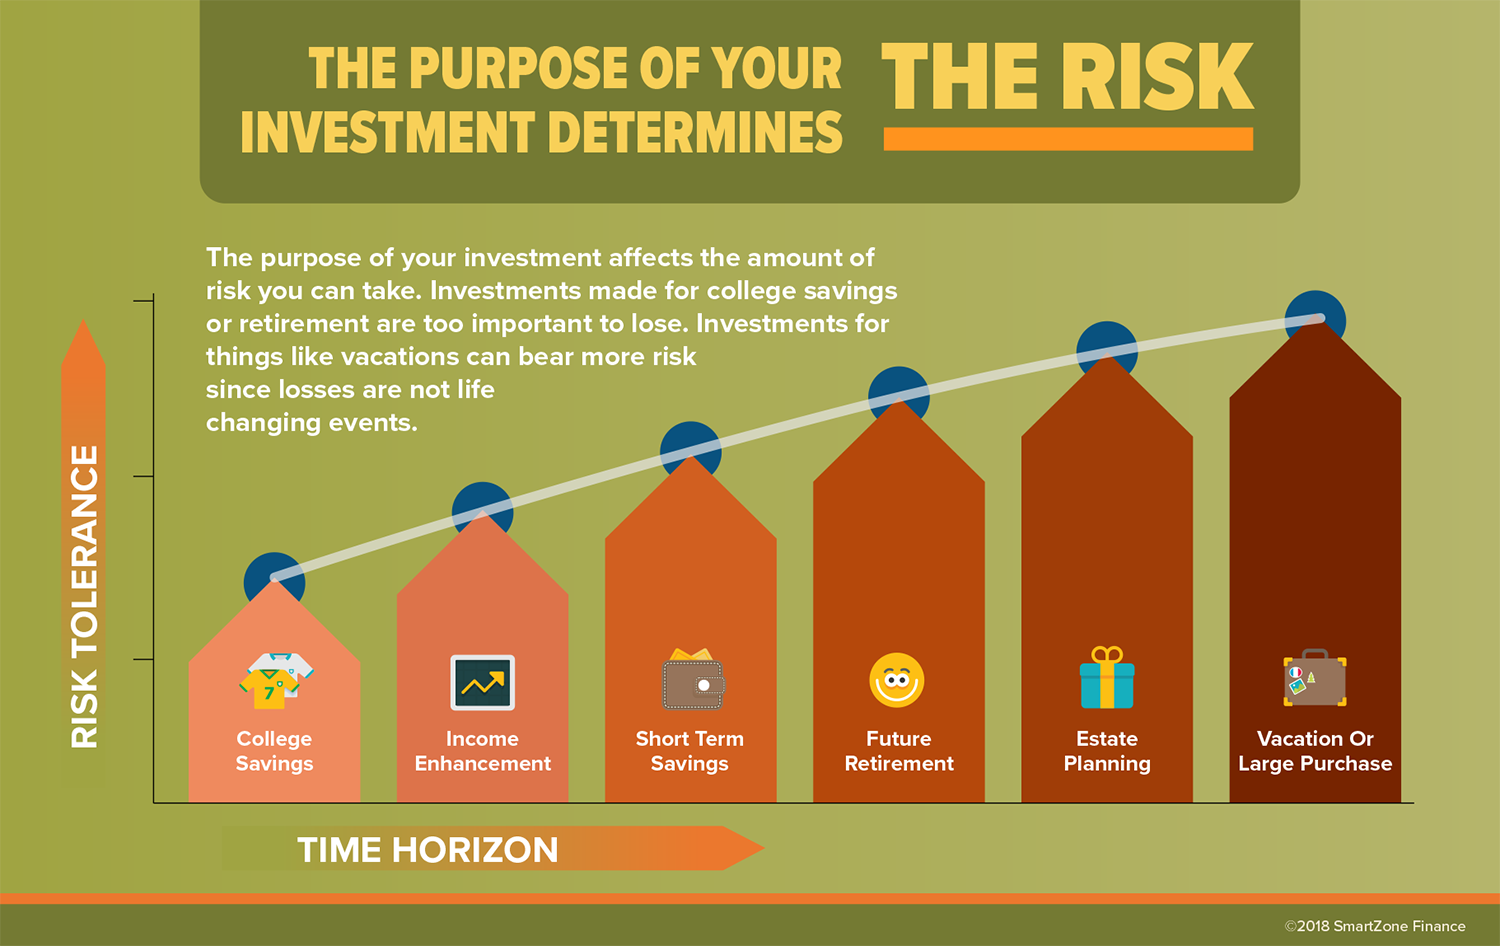 The purpose of your investment determines the risk you can take.